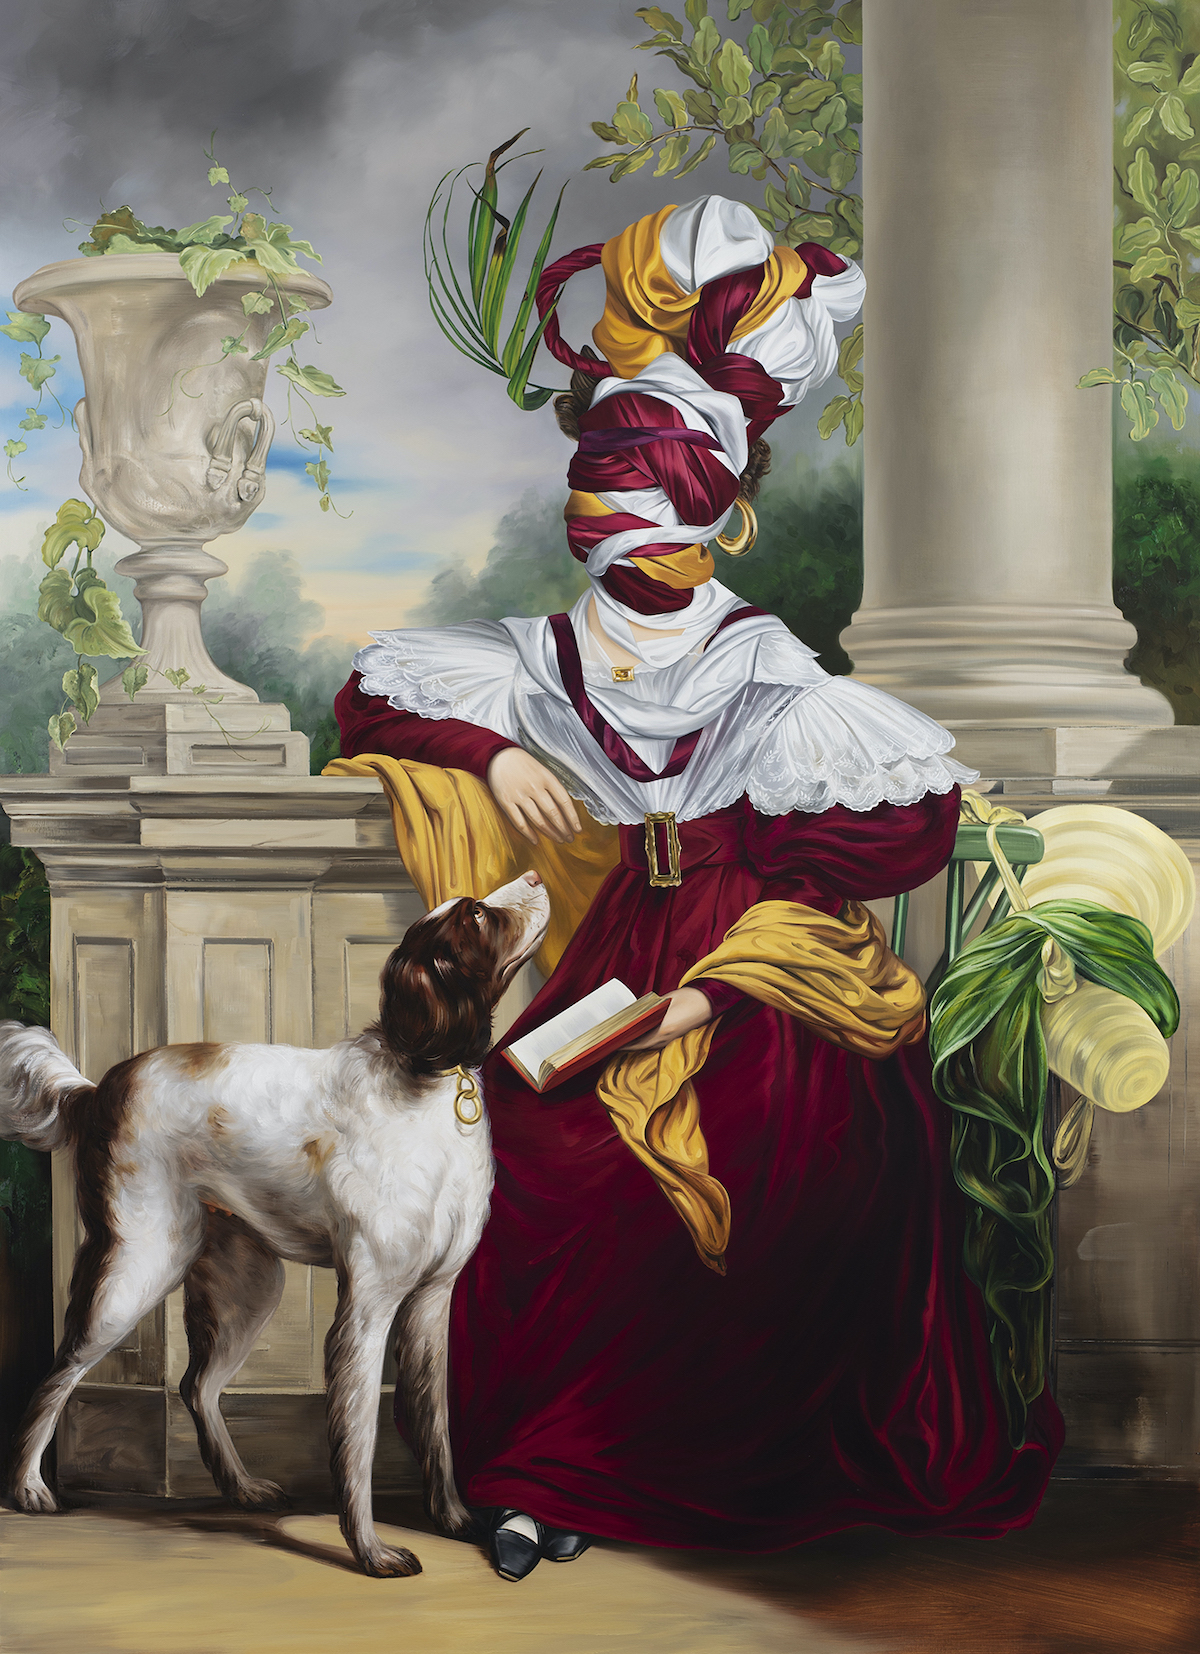 An ornate oil painting in the style of 18th or 19th century European portriature featuring a woman sitting in ornate dress with her face bound and obscured by the dress fabric, in a tall sculptural turban. Below her a brown and white dogs looks up. She has a book in her hand, with the other resting on a white column atop which a vase with ivy sits.